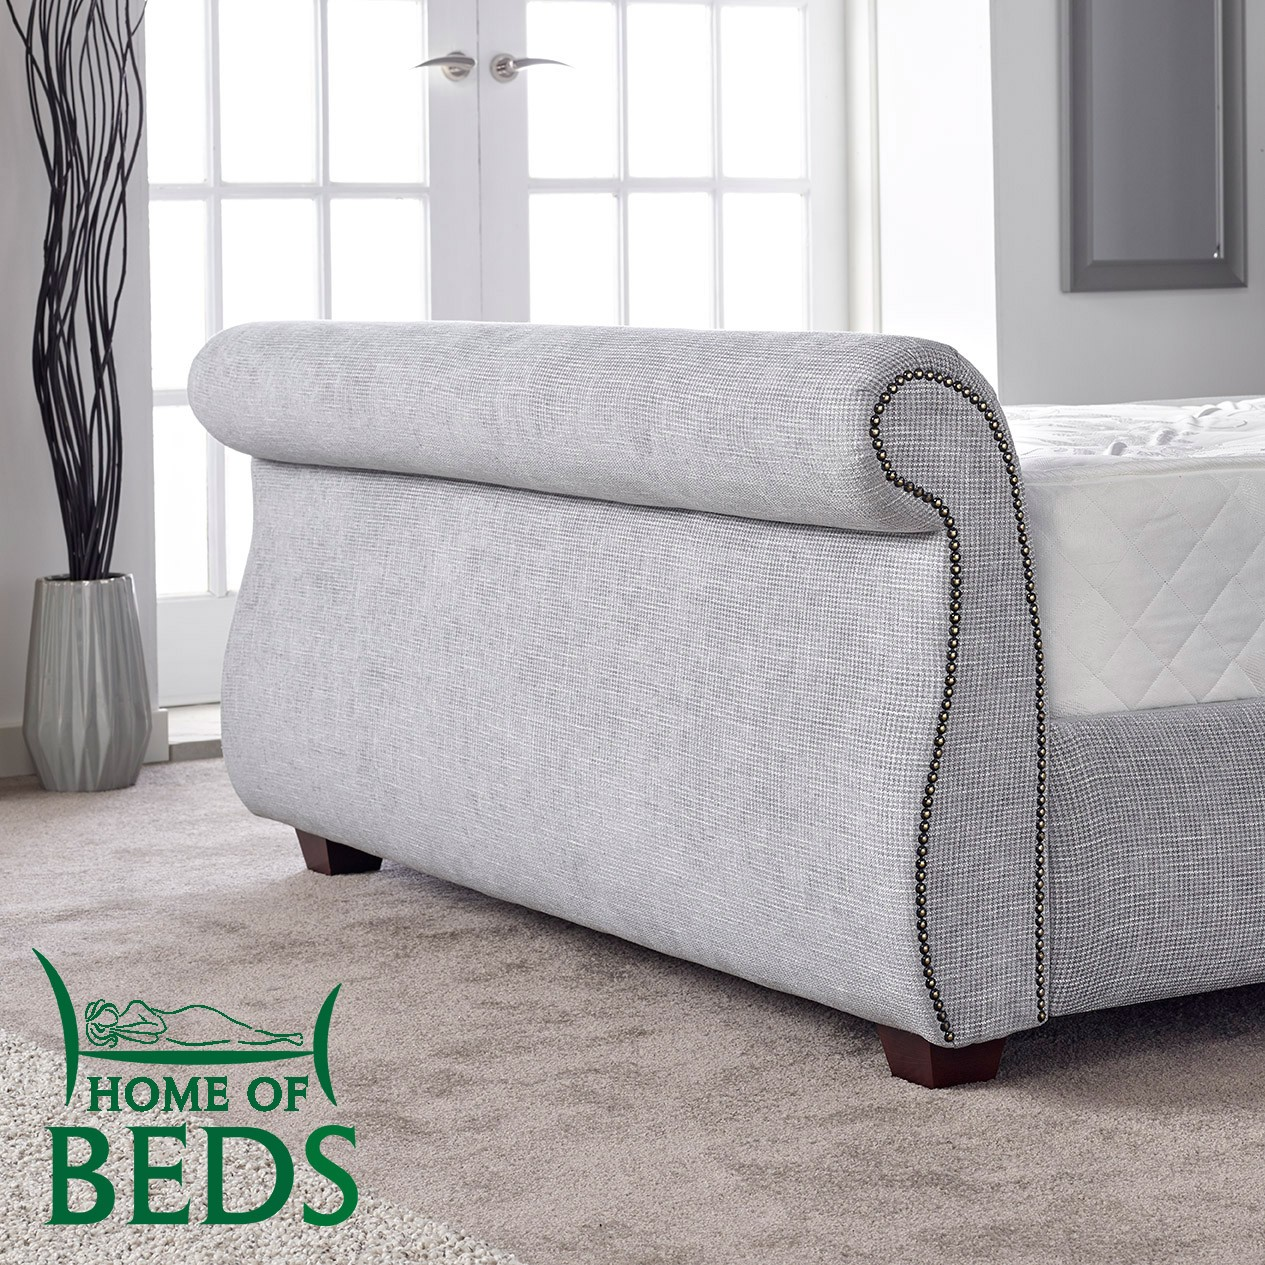 Tuscany 5ft fabric bedstead